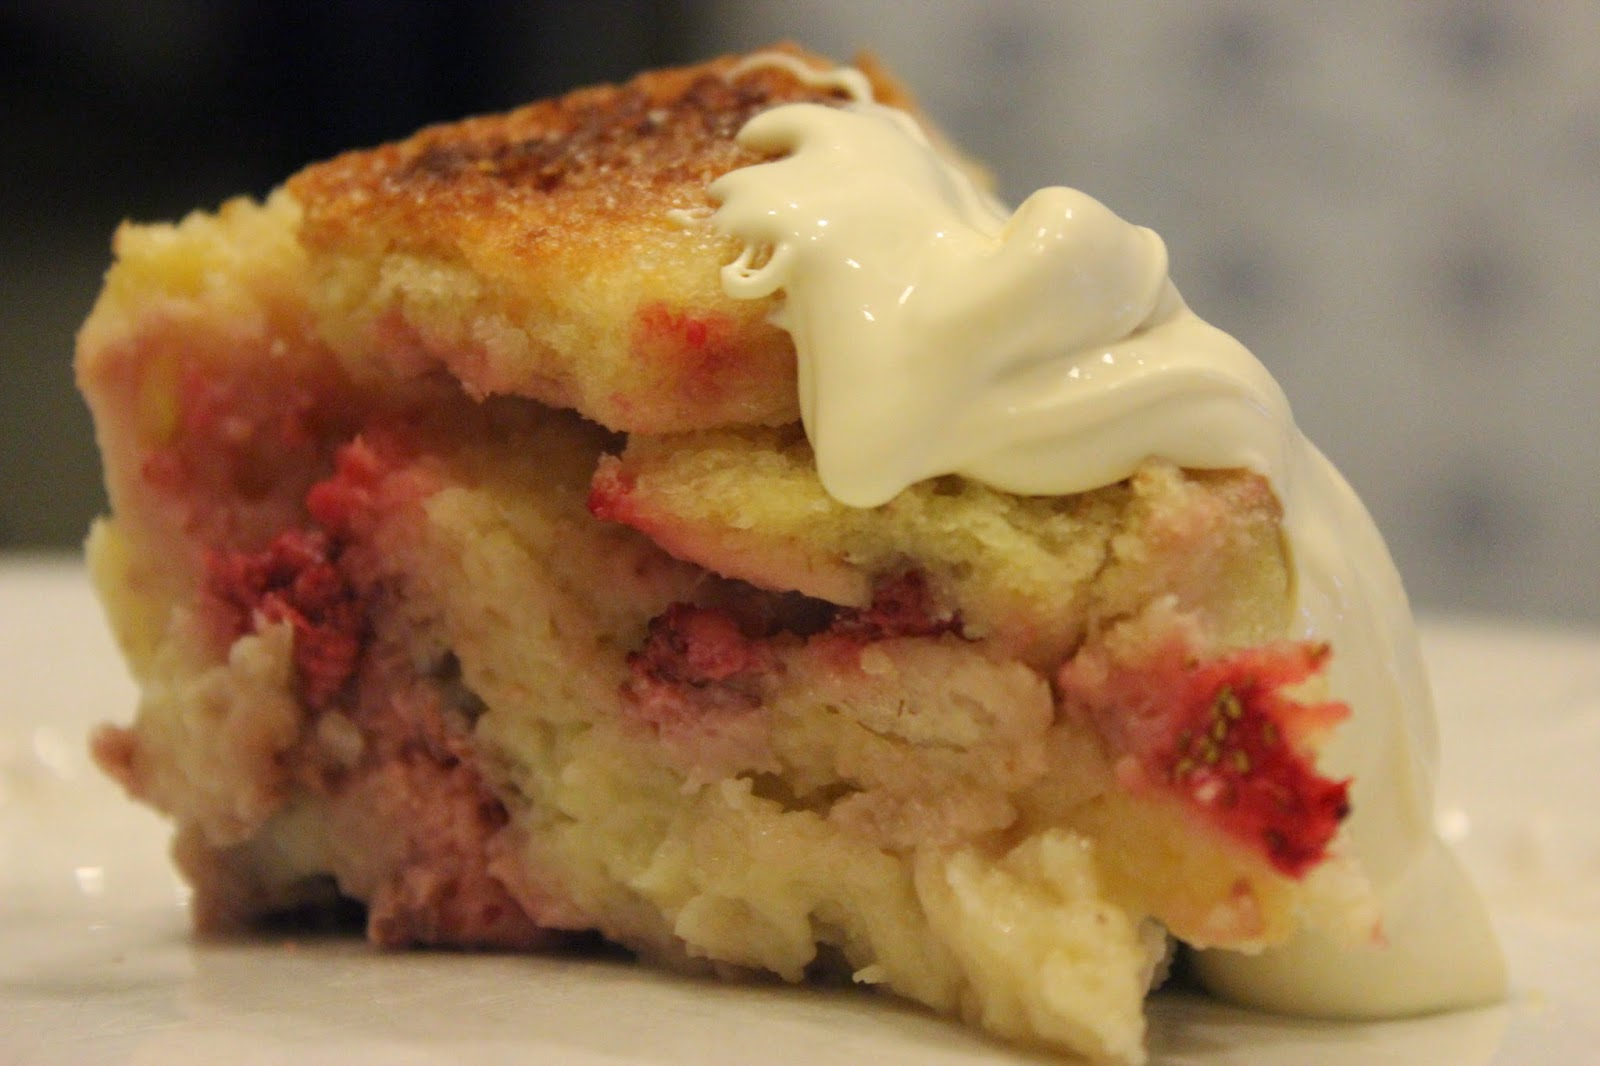 Strawberry bread and butter pudding recipe